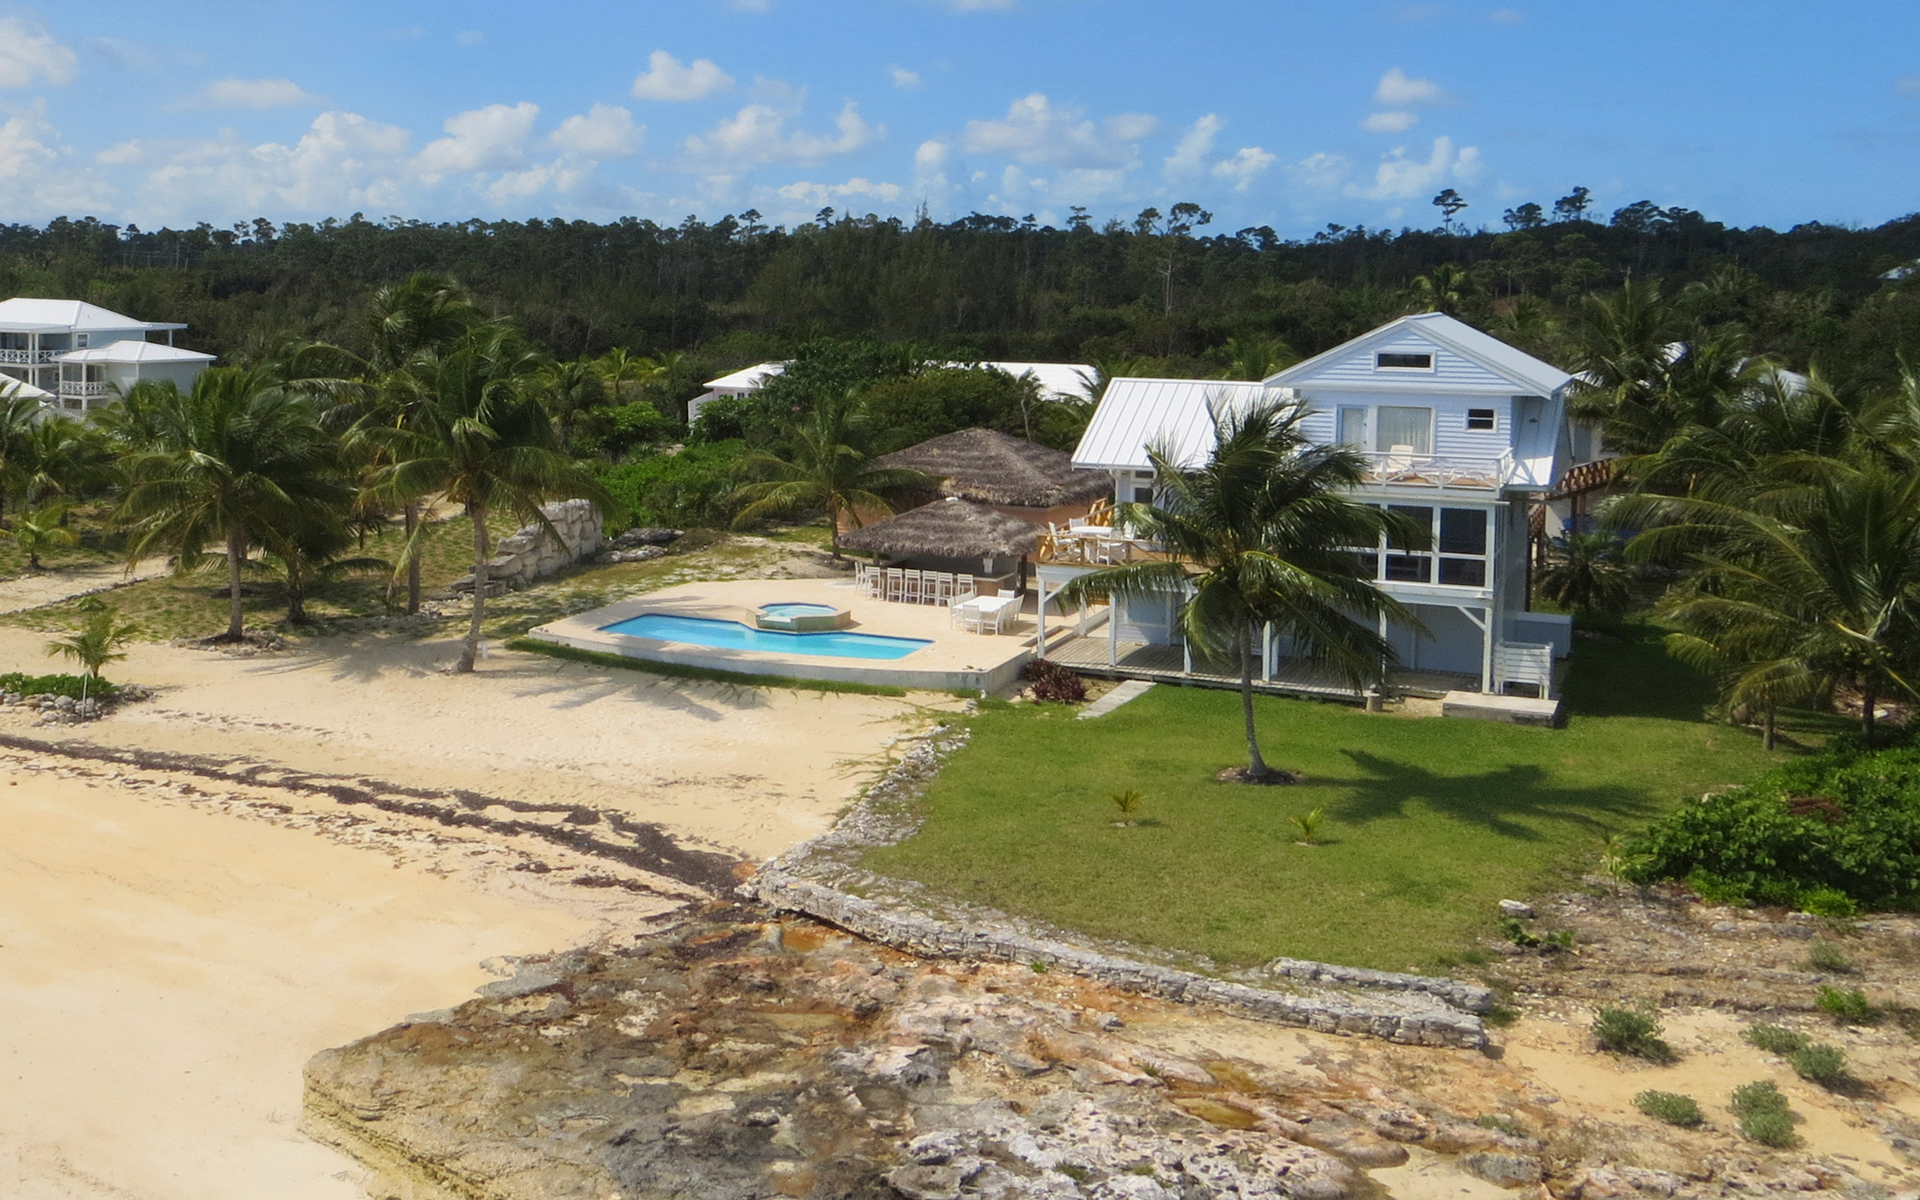 Single Family Home for Sale at Palmetto Beach Estate, Abaco Island, Bahamas. Turnkey Estate Abaco, Bahamas